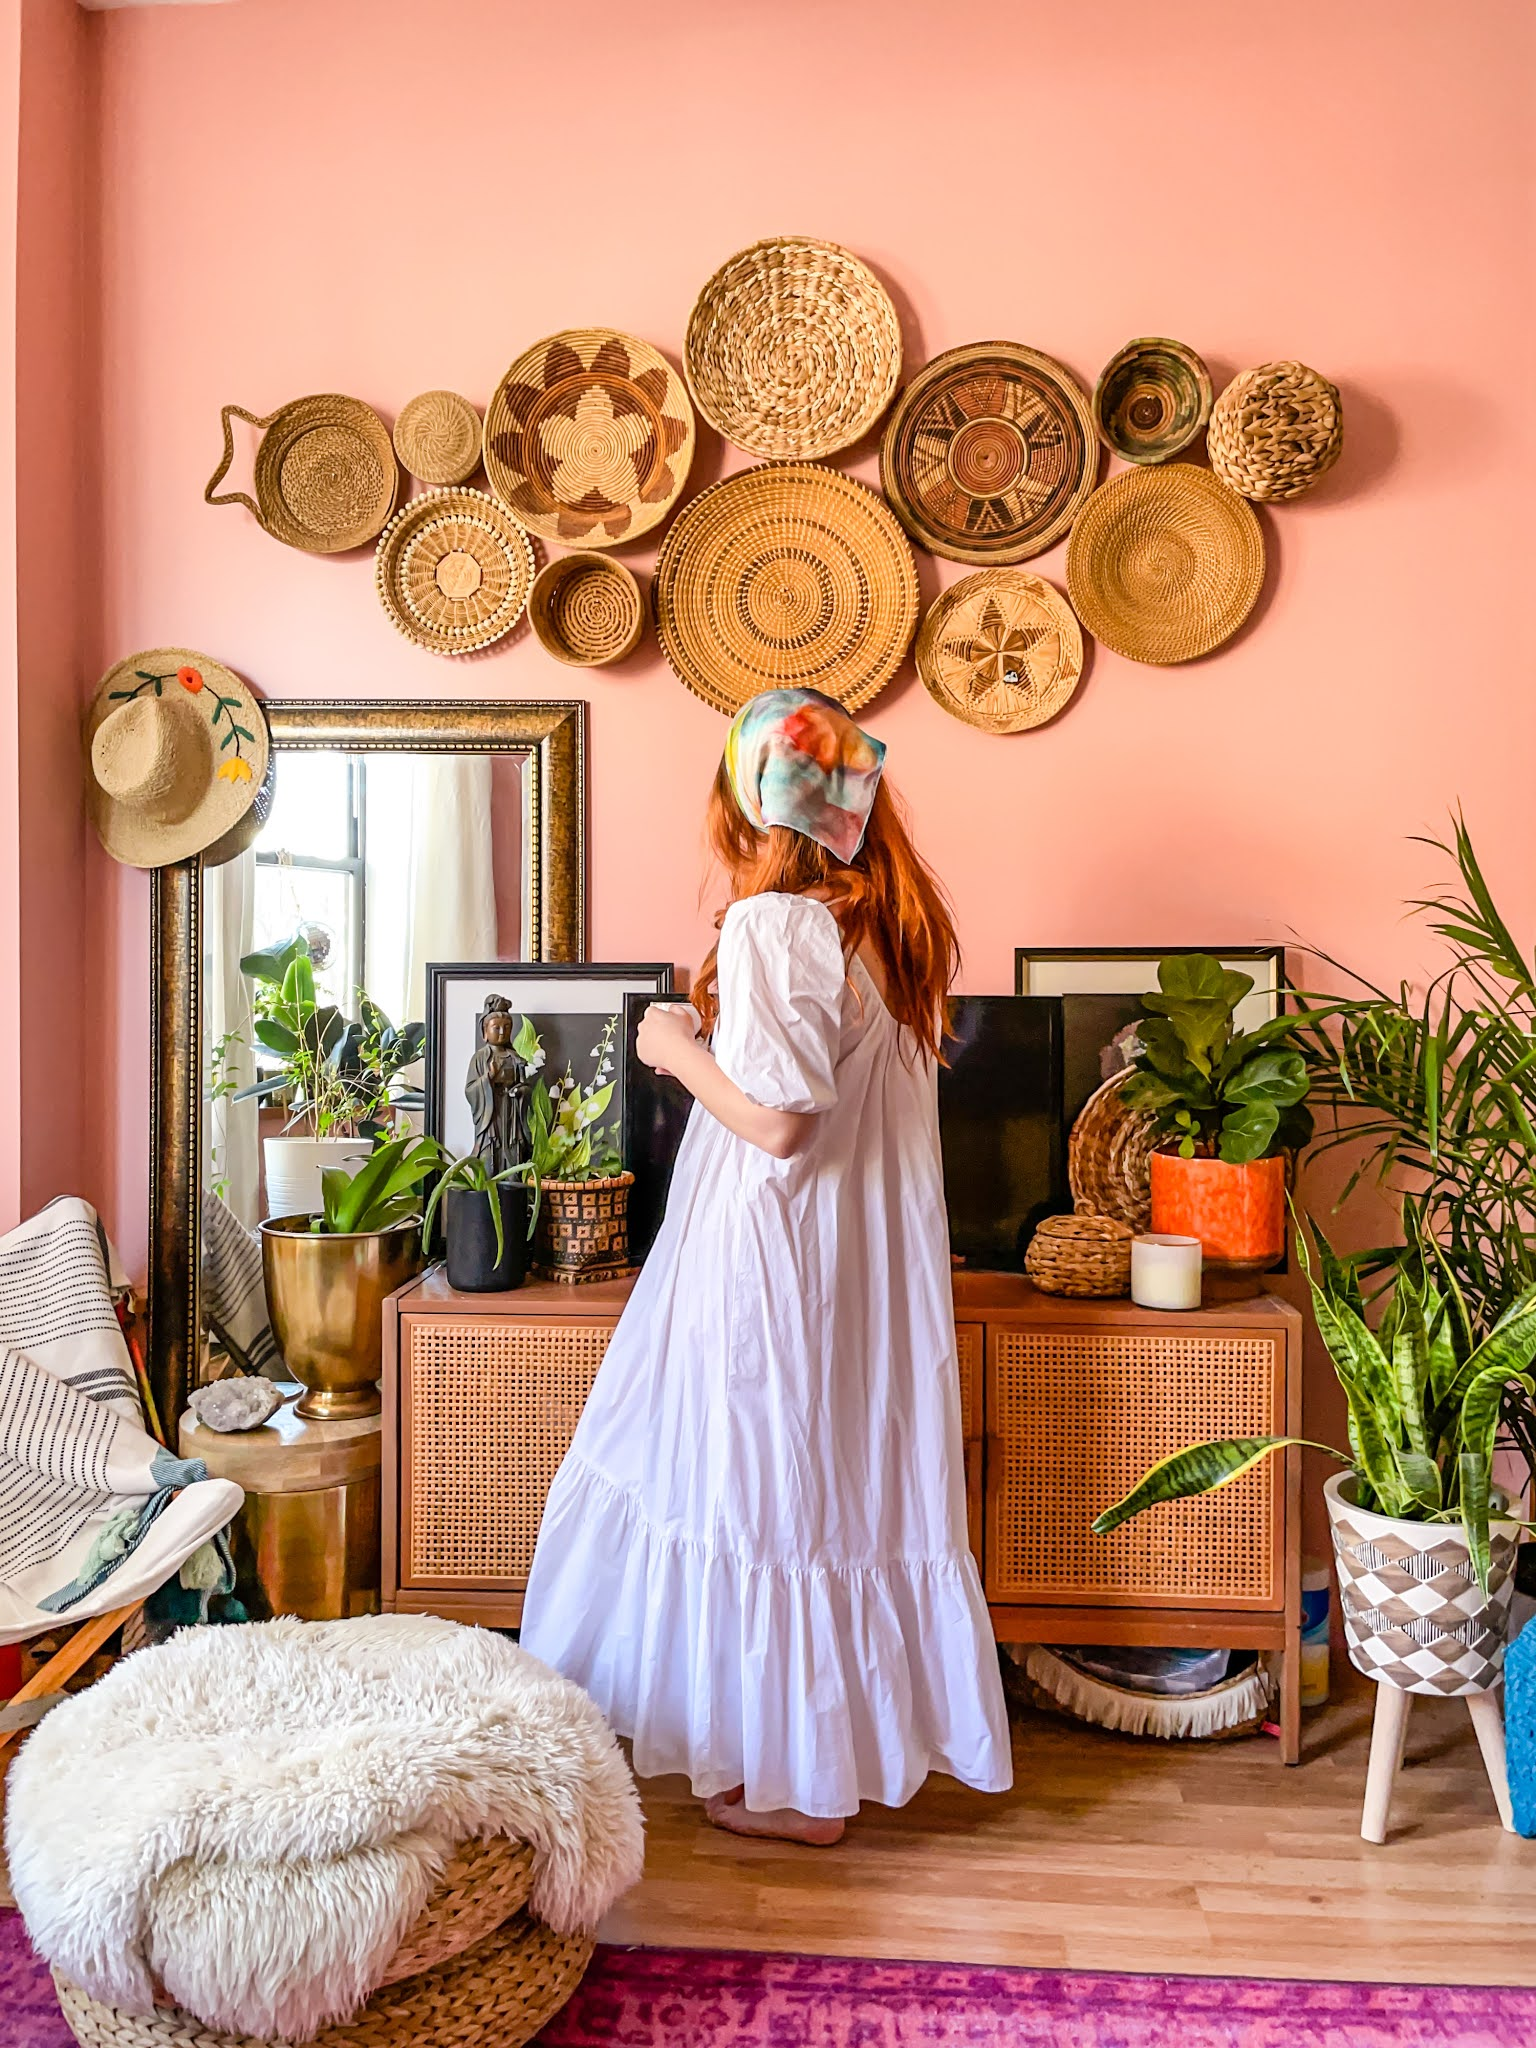 colorful rooms // pink room // pink decor // basket wall inspo // basket wall inspo // colorful planters // plant homes // pink living room // living room with plants // opal house media stand // rattan furniture